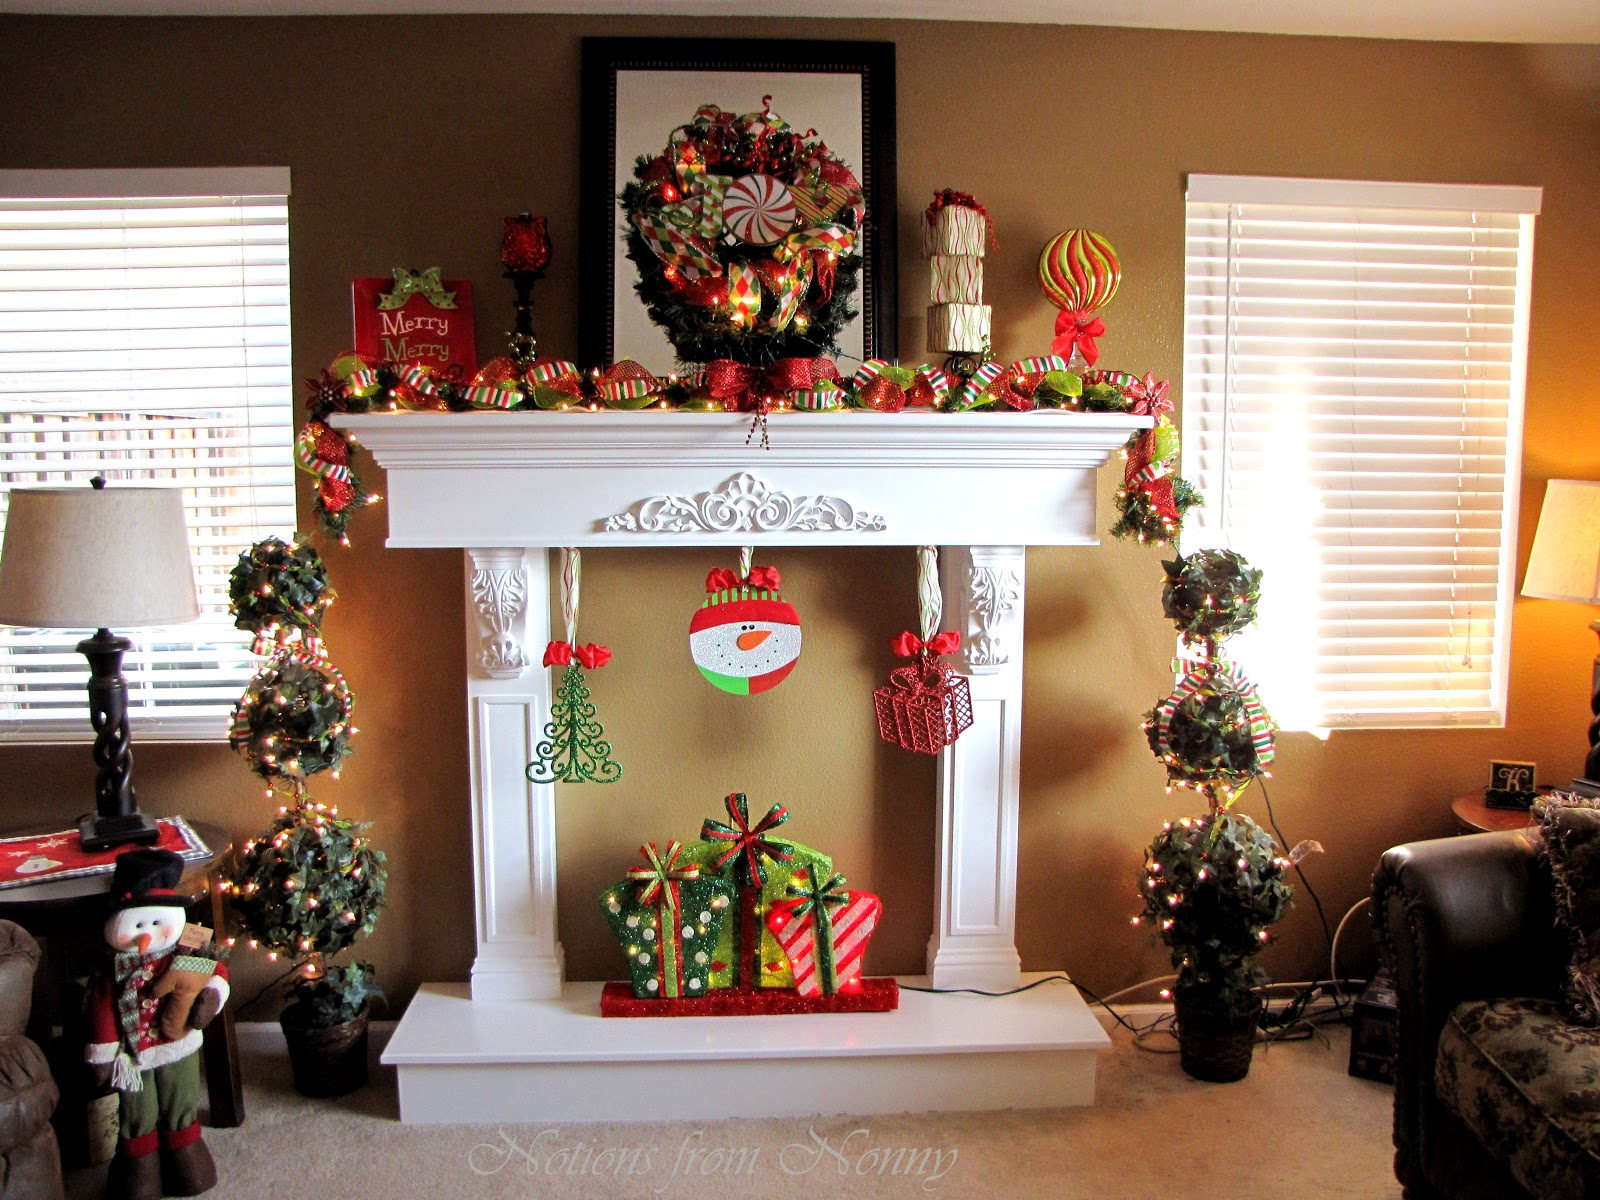 Fabulous Faux Fireplace with Mantle - Notions from Nonny